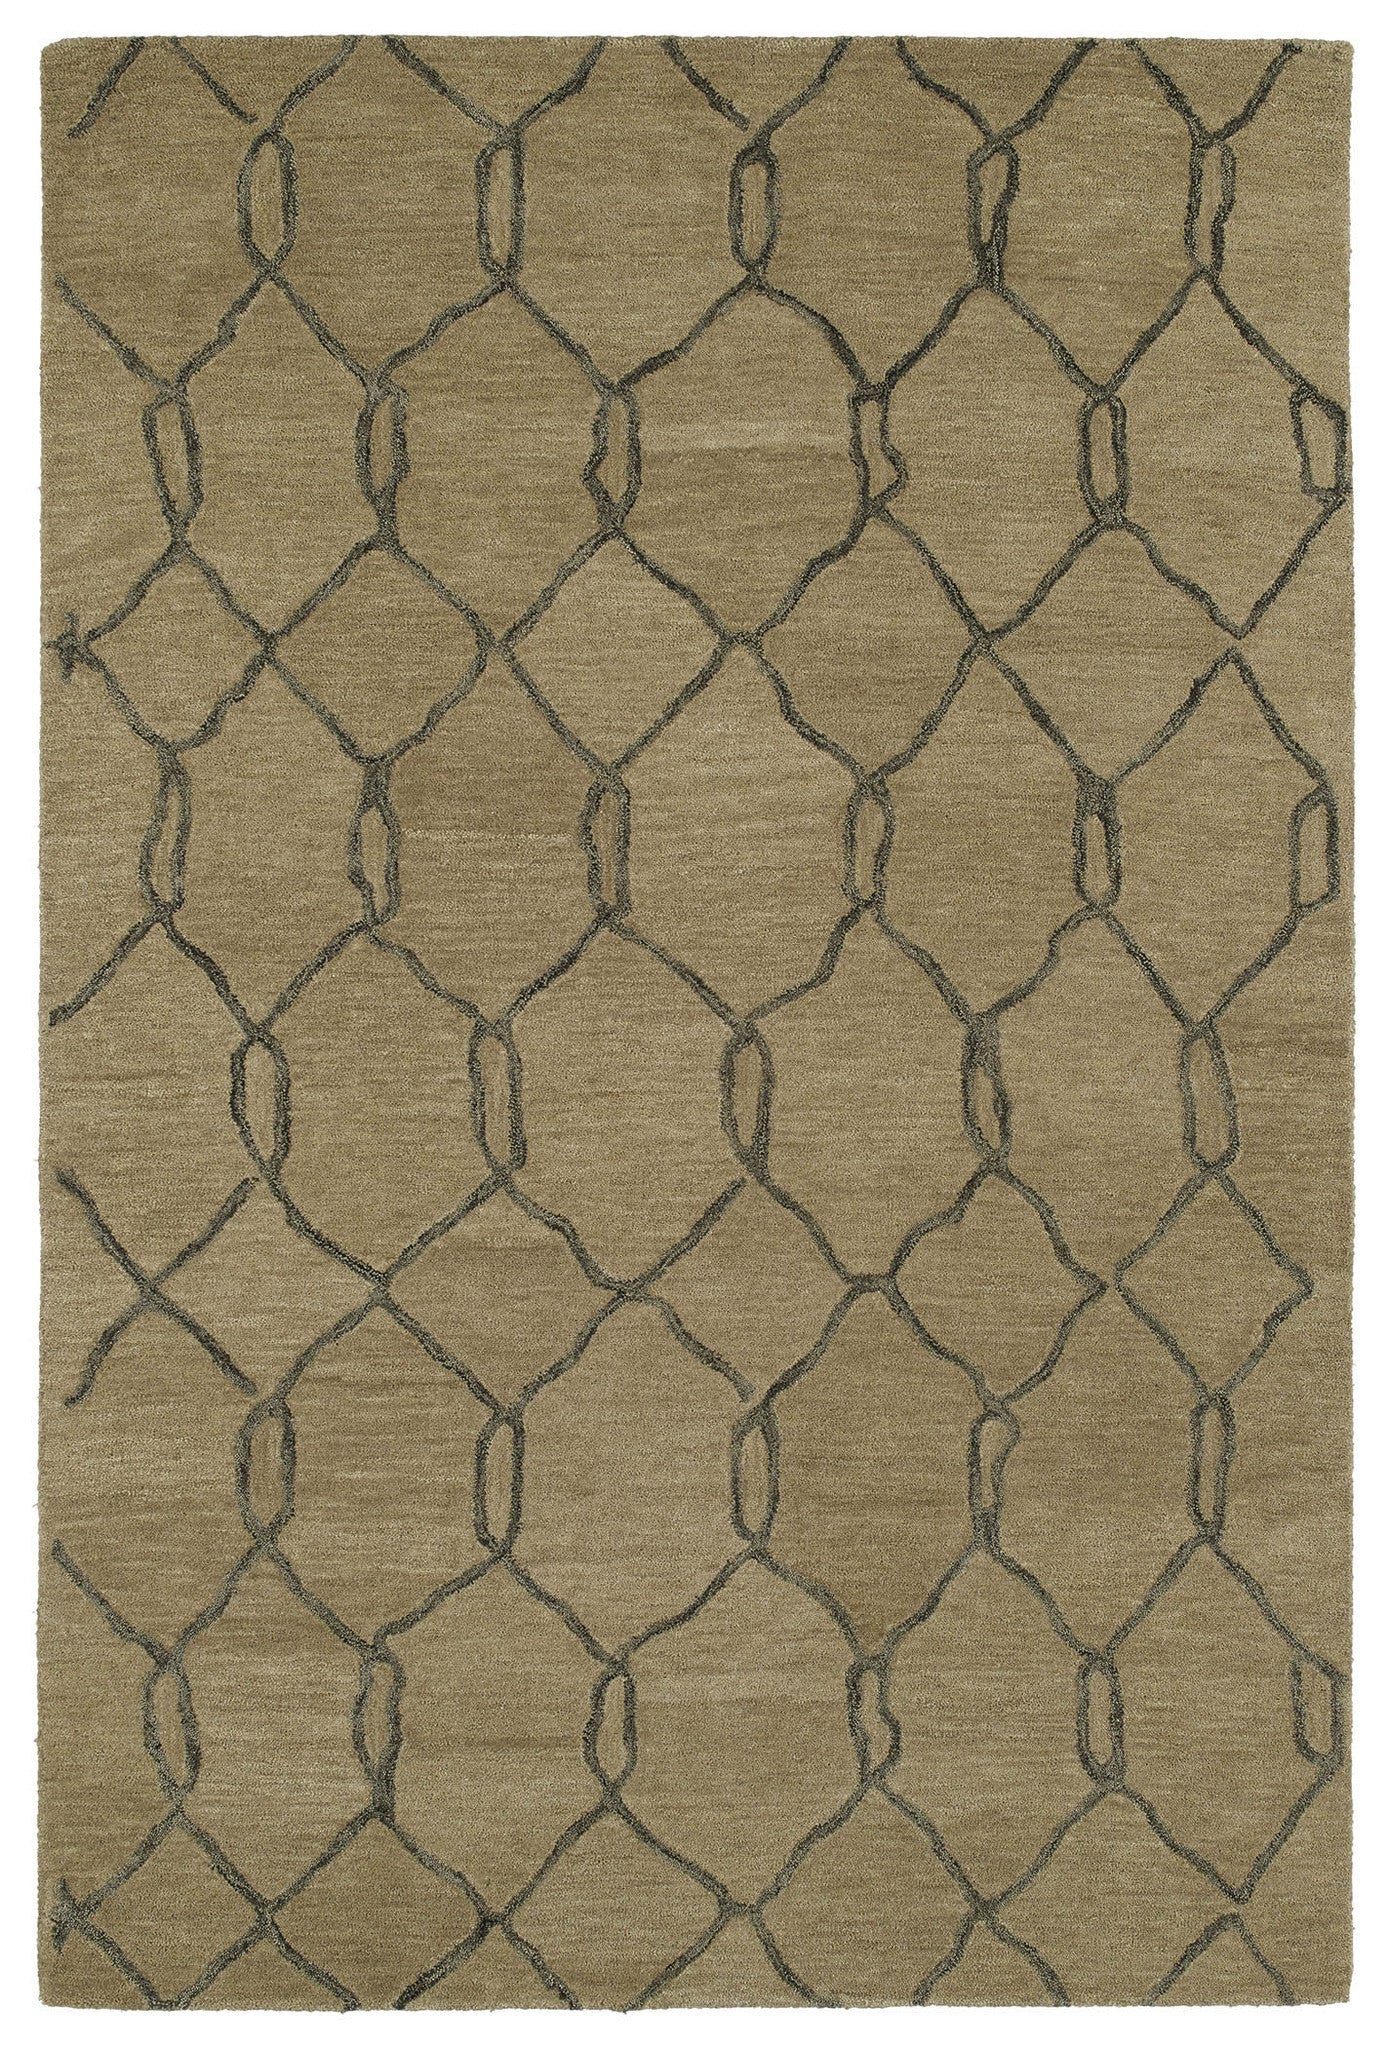 Kaleen Casablanca CAS02 Light Brown Area Rug